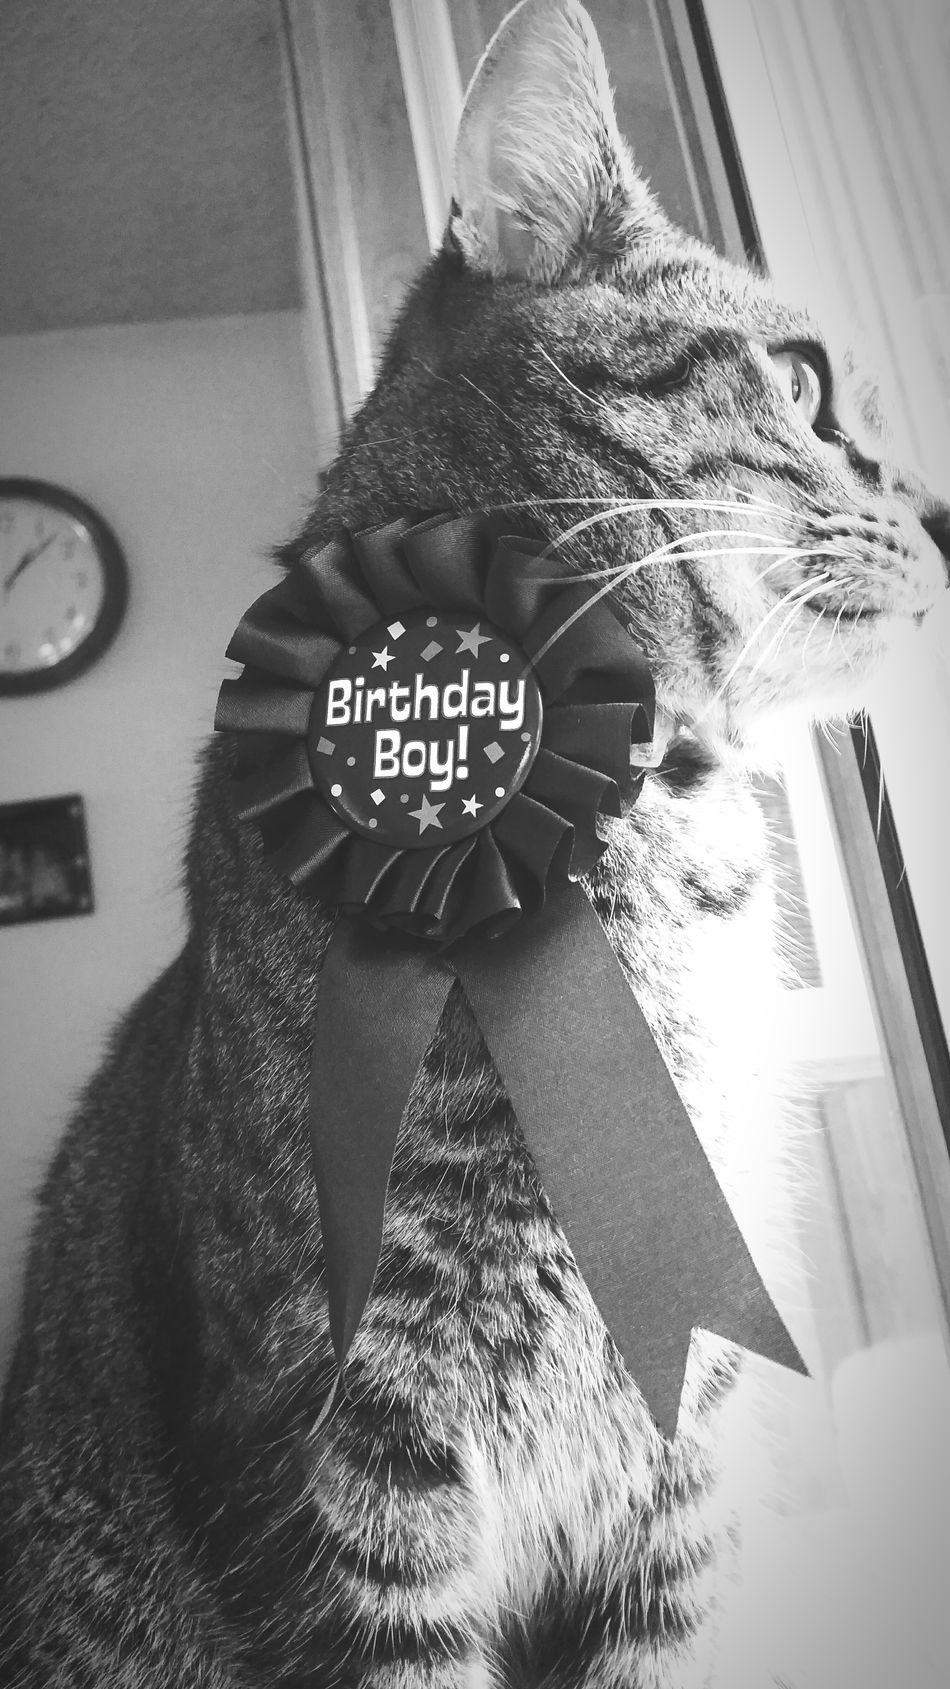 HappyBirthday Birthdaycat Birthdayboy Kitty Lovehim Myworld